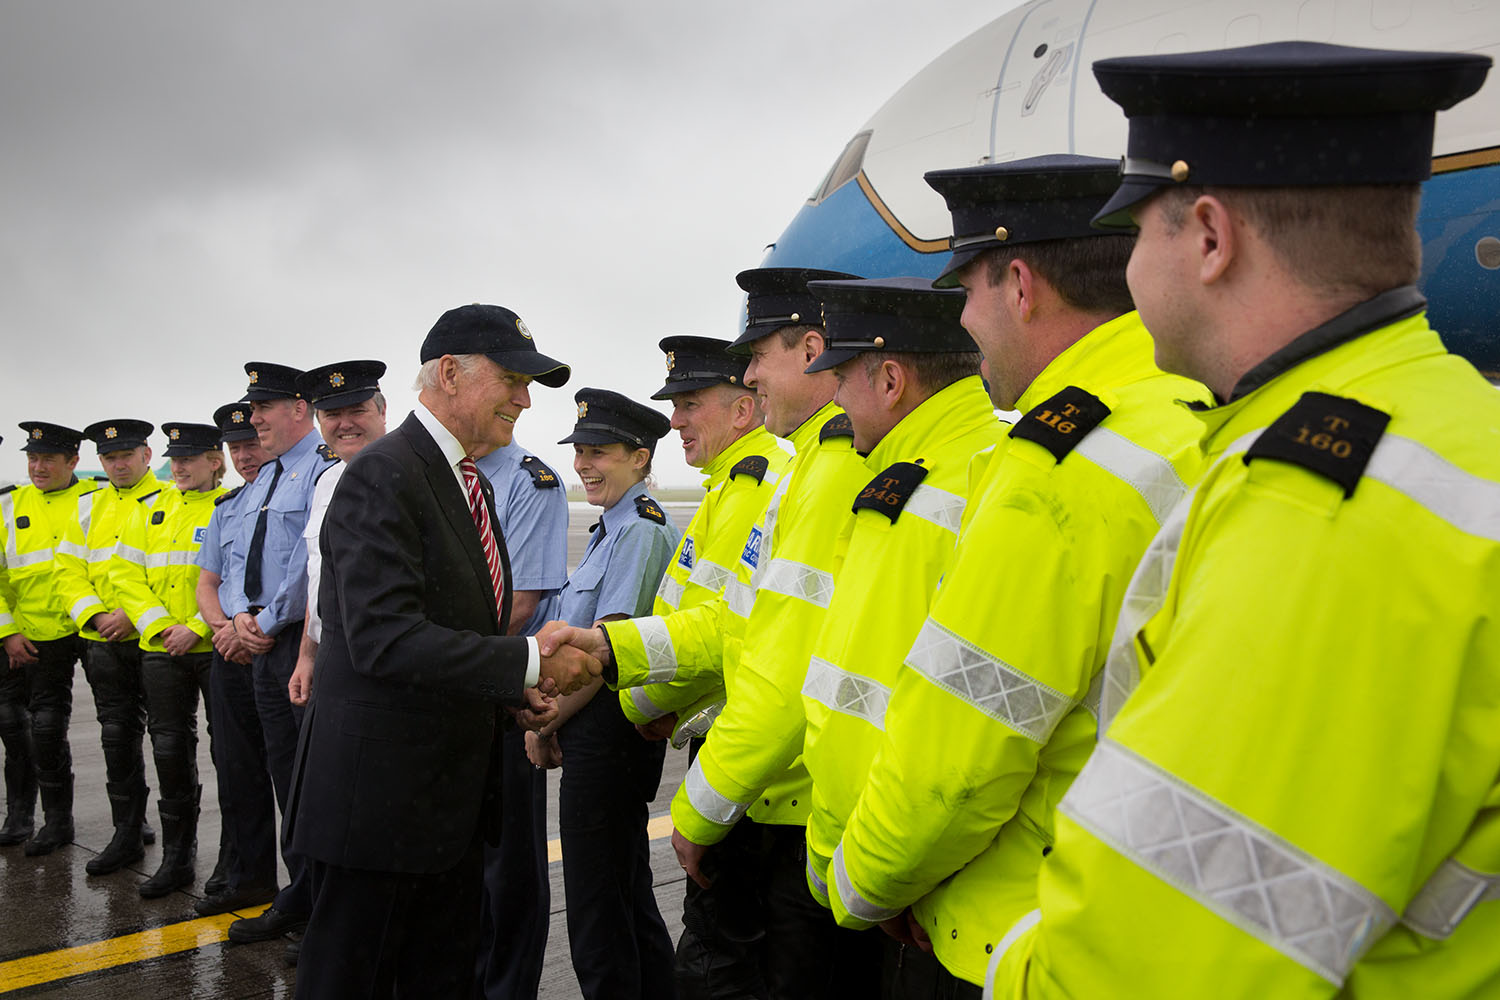 Vice President Joe Biden shakes hands with local law enforcement before boarding Air Force Two, at Dublin International Airport, in Dublin, Ireland, June 26, 2016. (Official White House Photo by David Lienemann)